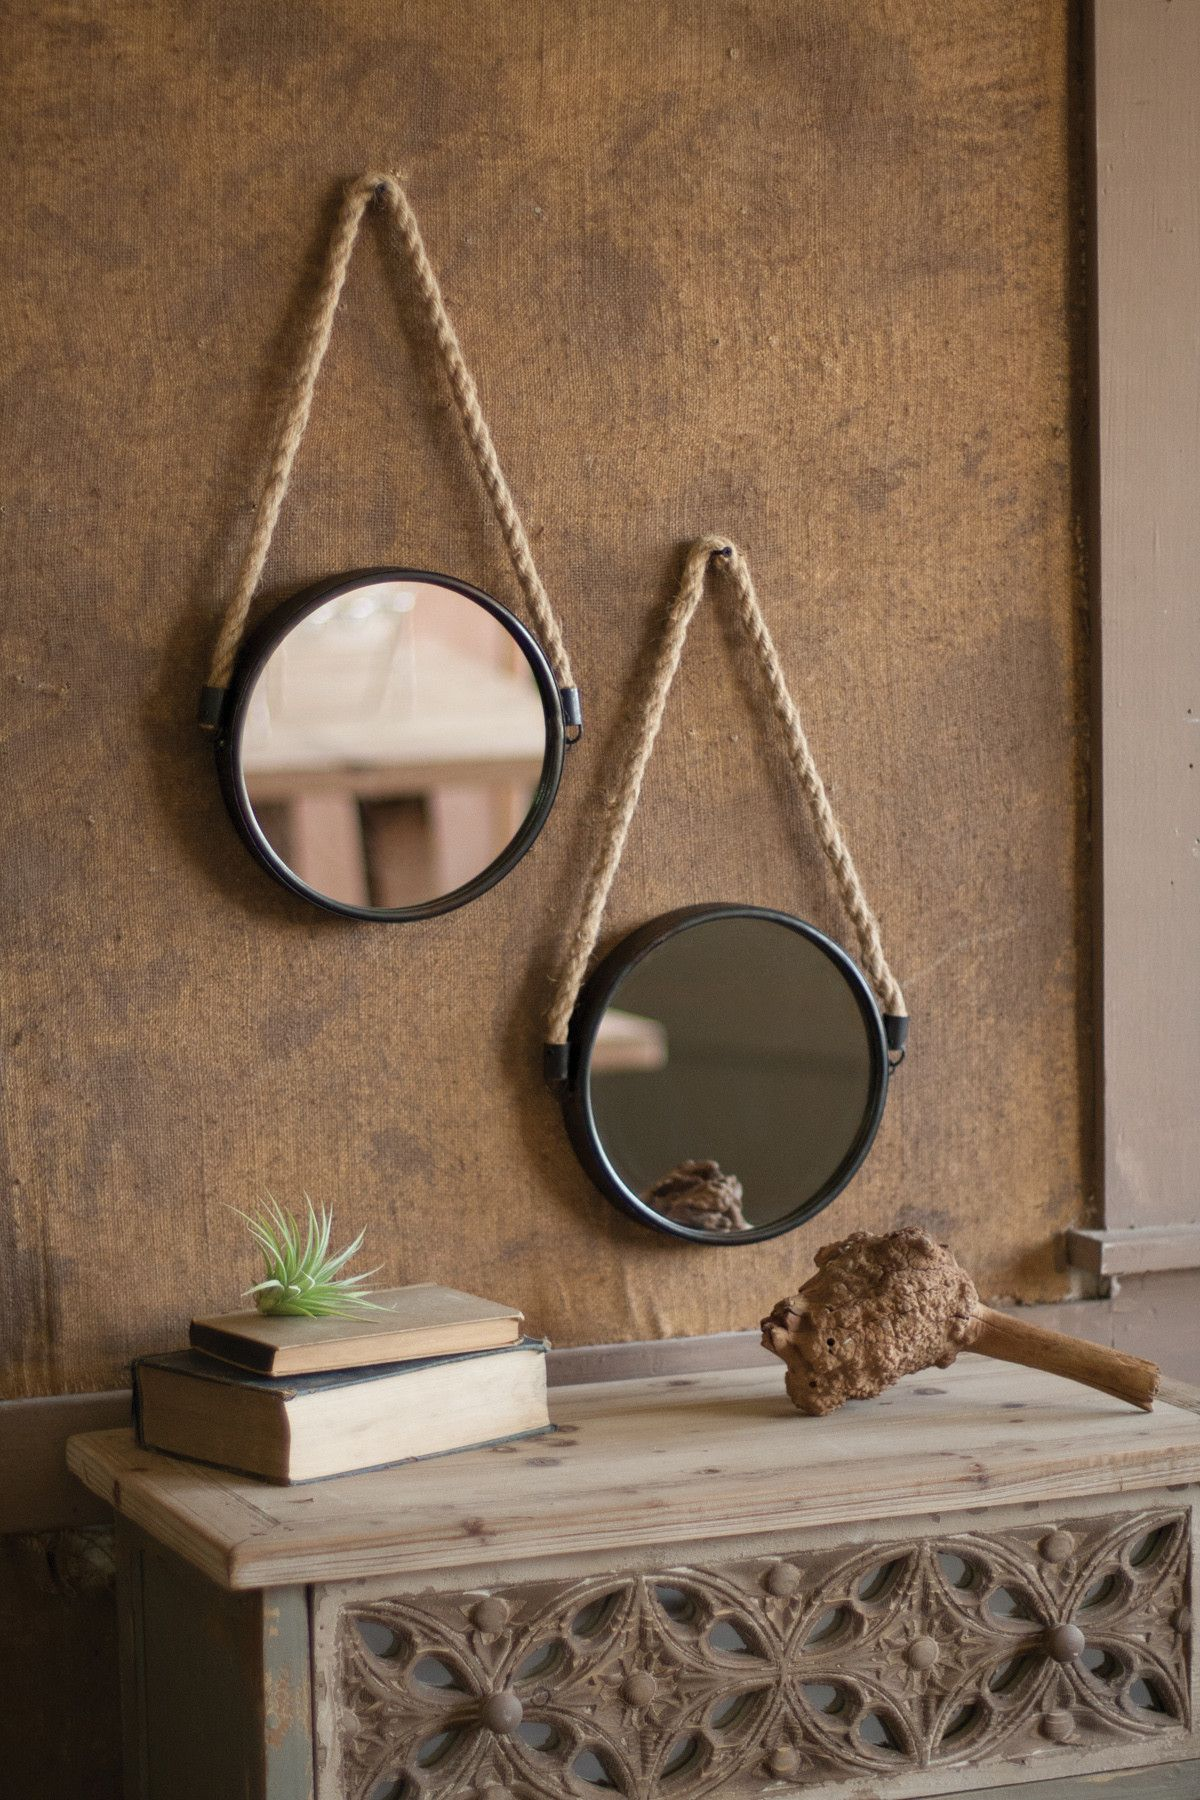 Accent mirror with metal frame and rope hanger rope